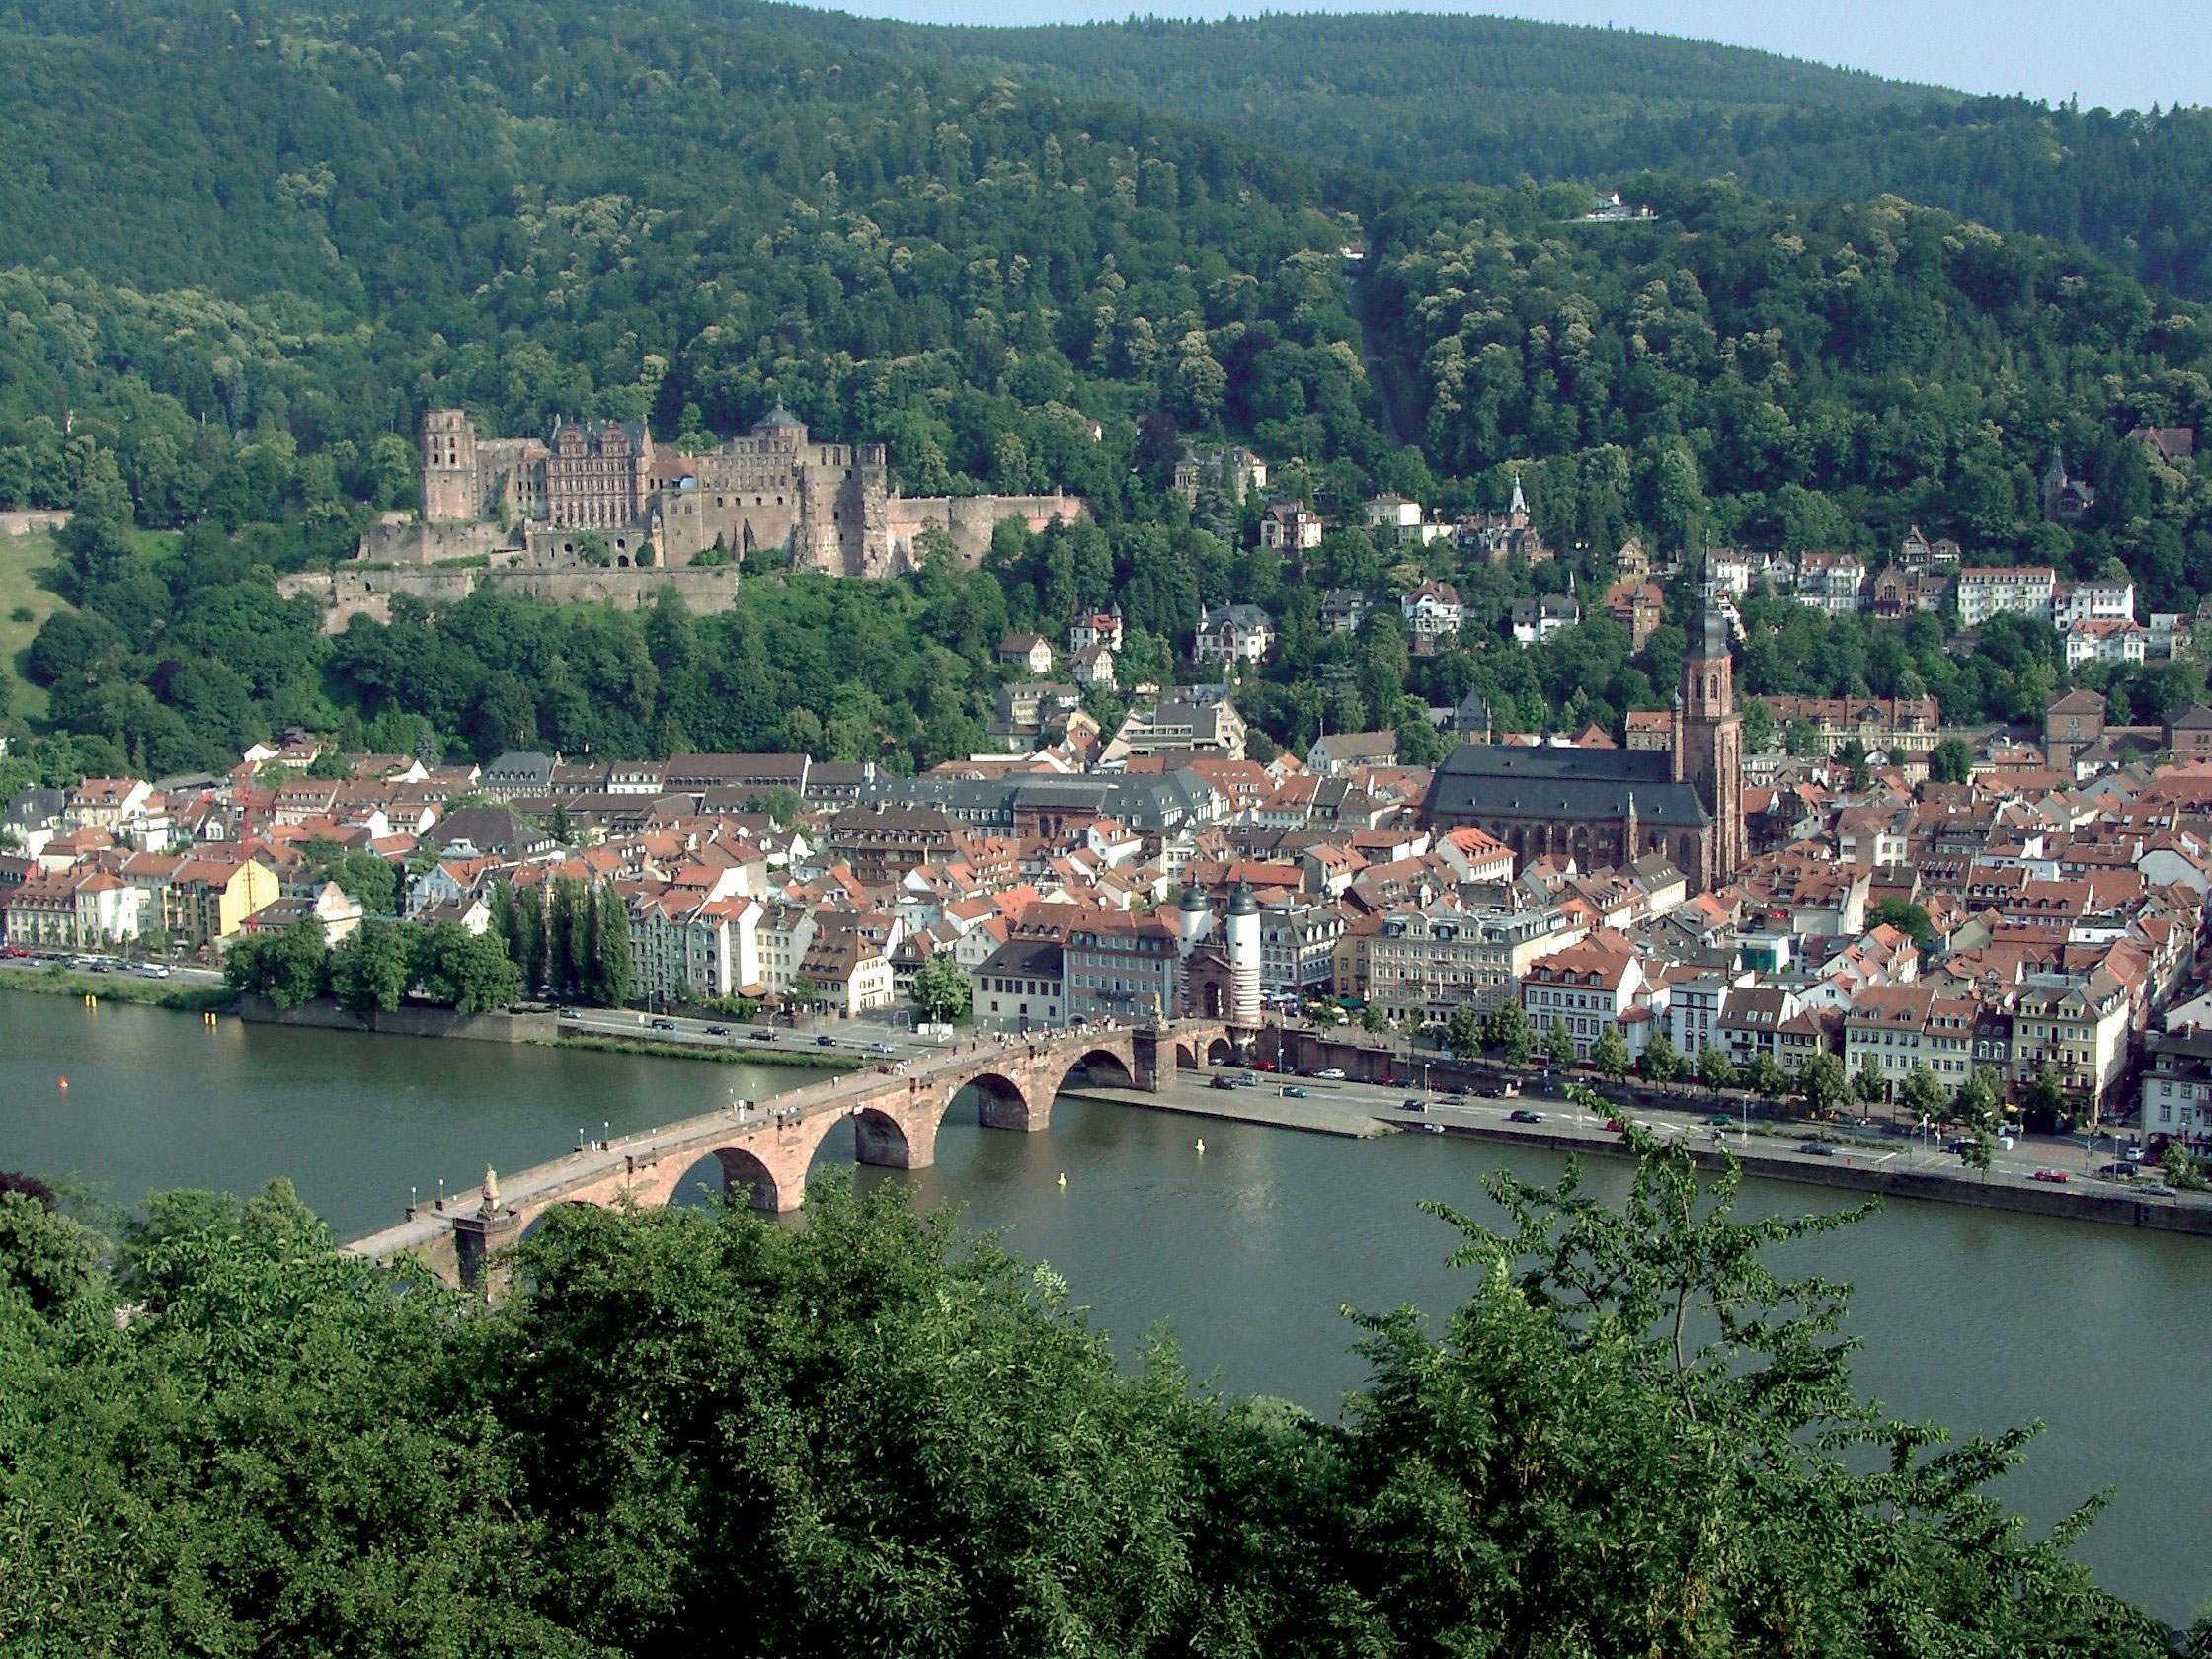 Heidelberg Alemania Heidelberg Castle A Famous Ruin In Germany And Landmark